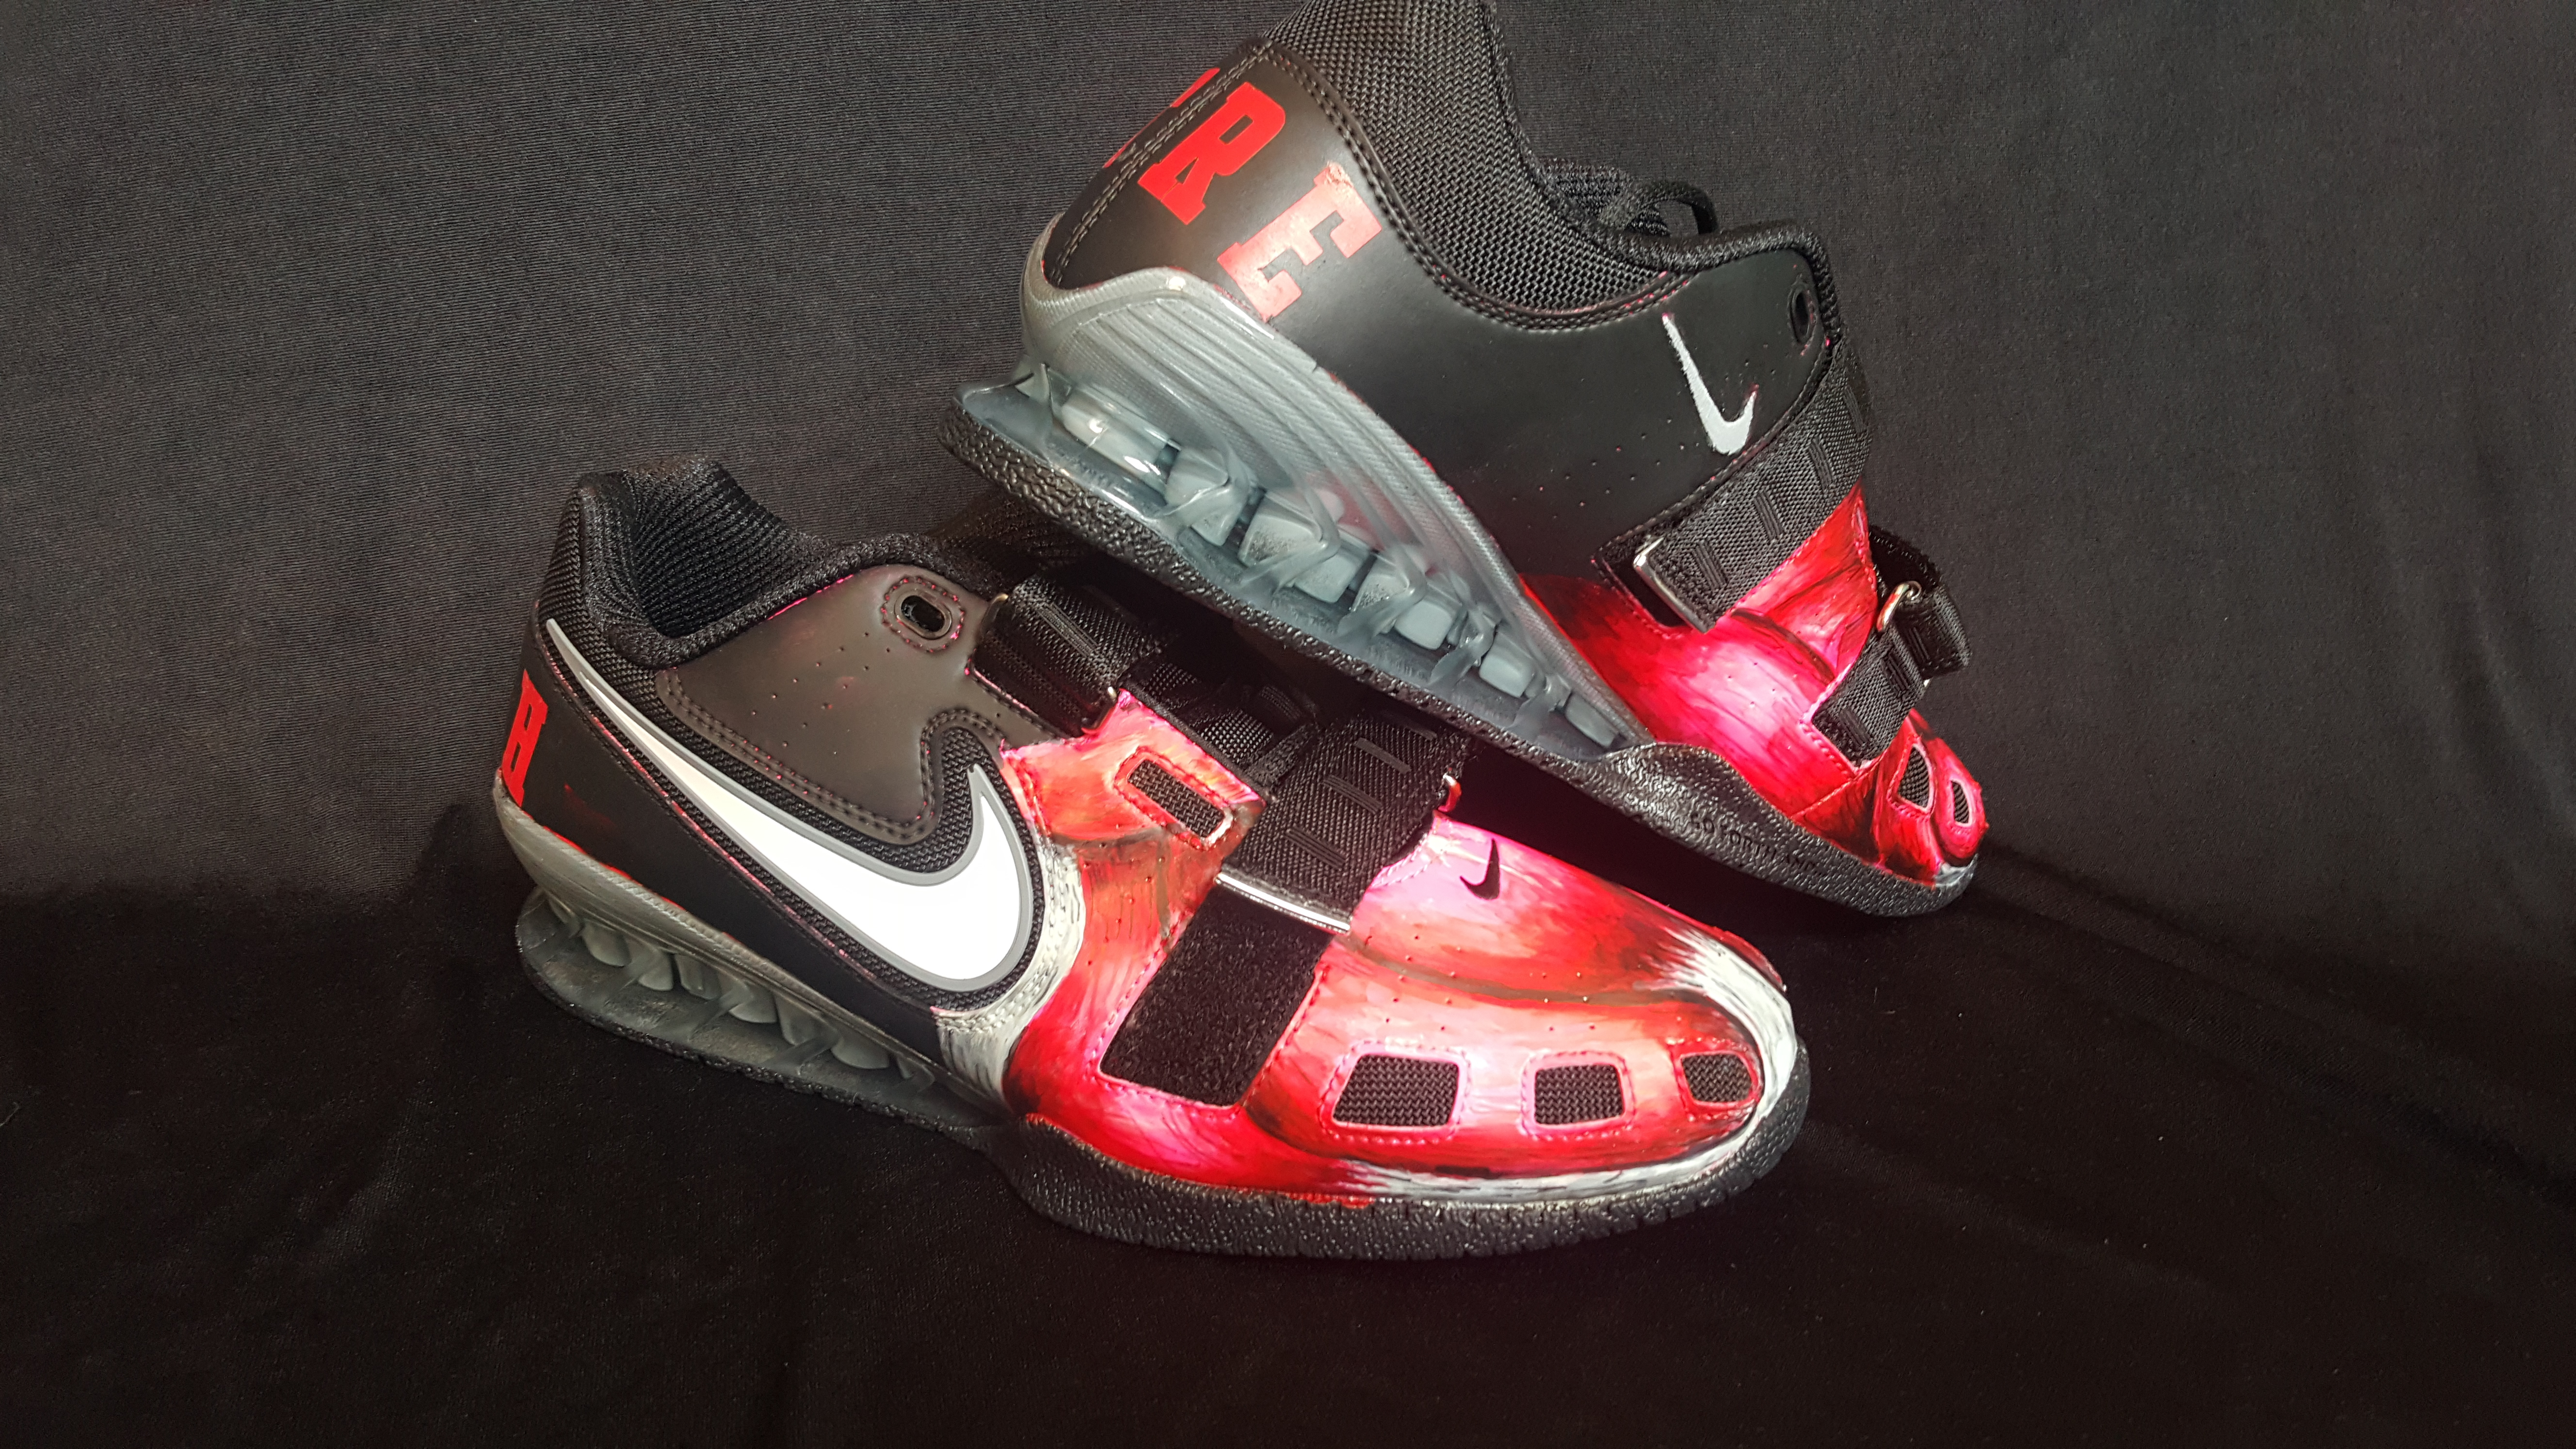 Josh Peters Customized Nike Romaleos